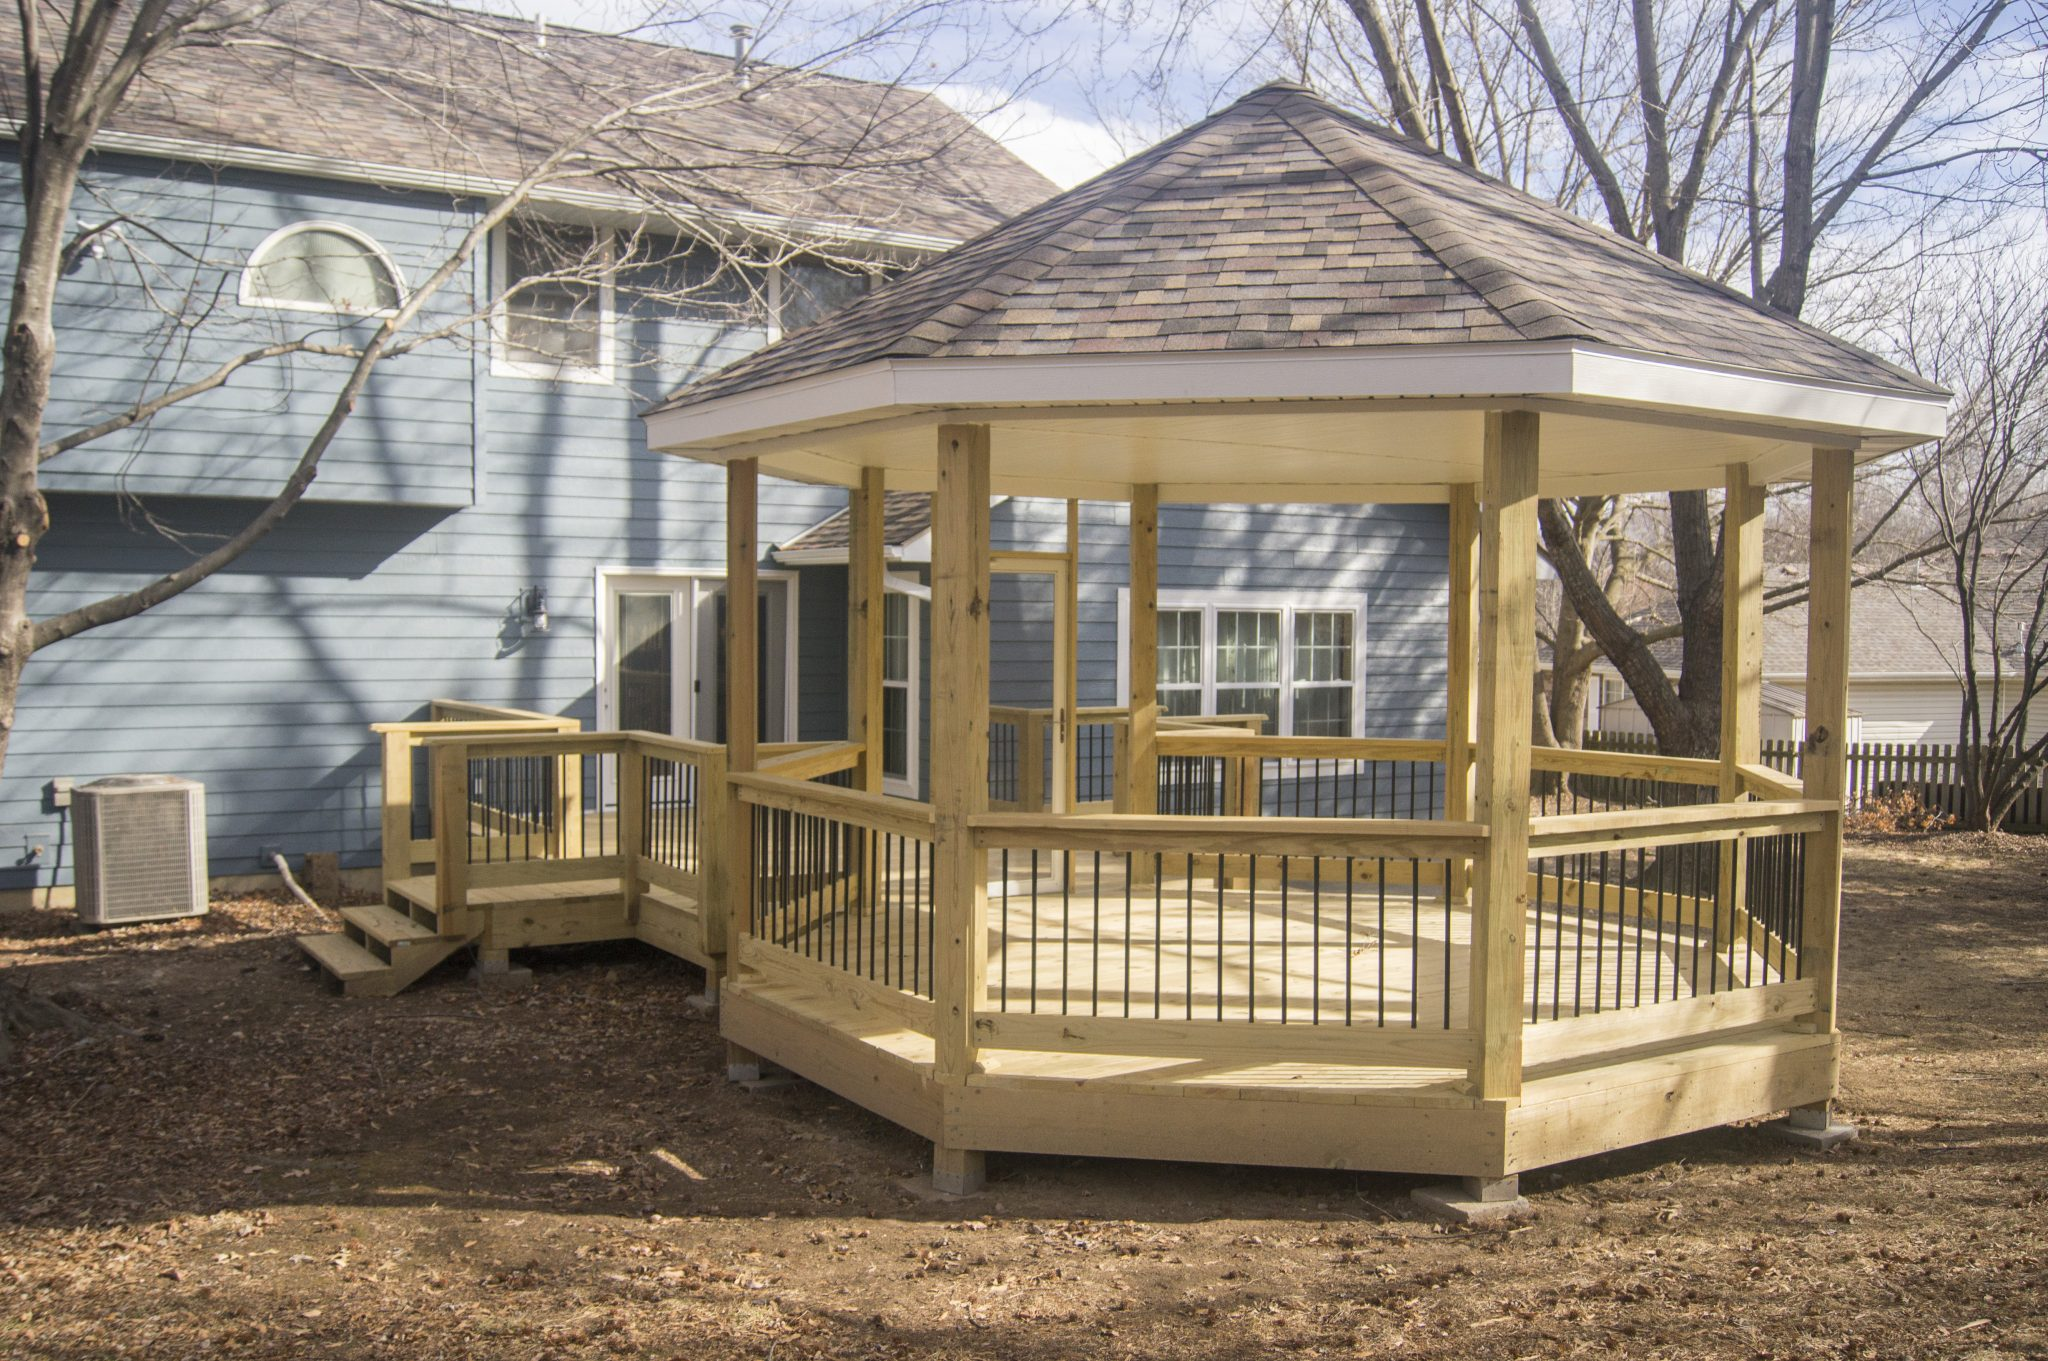 Gazebo construction freshly completed by TrueSon Exteriors.